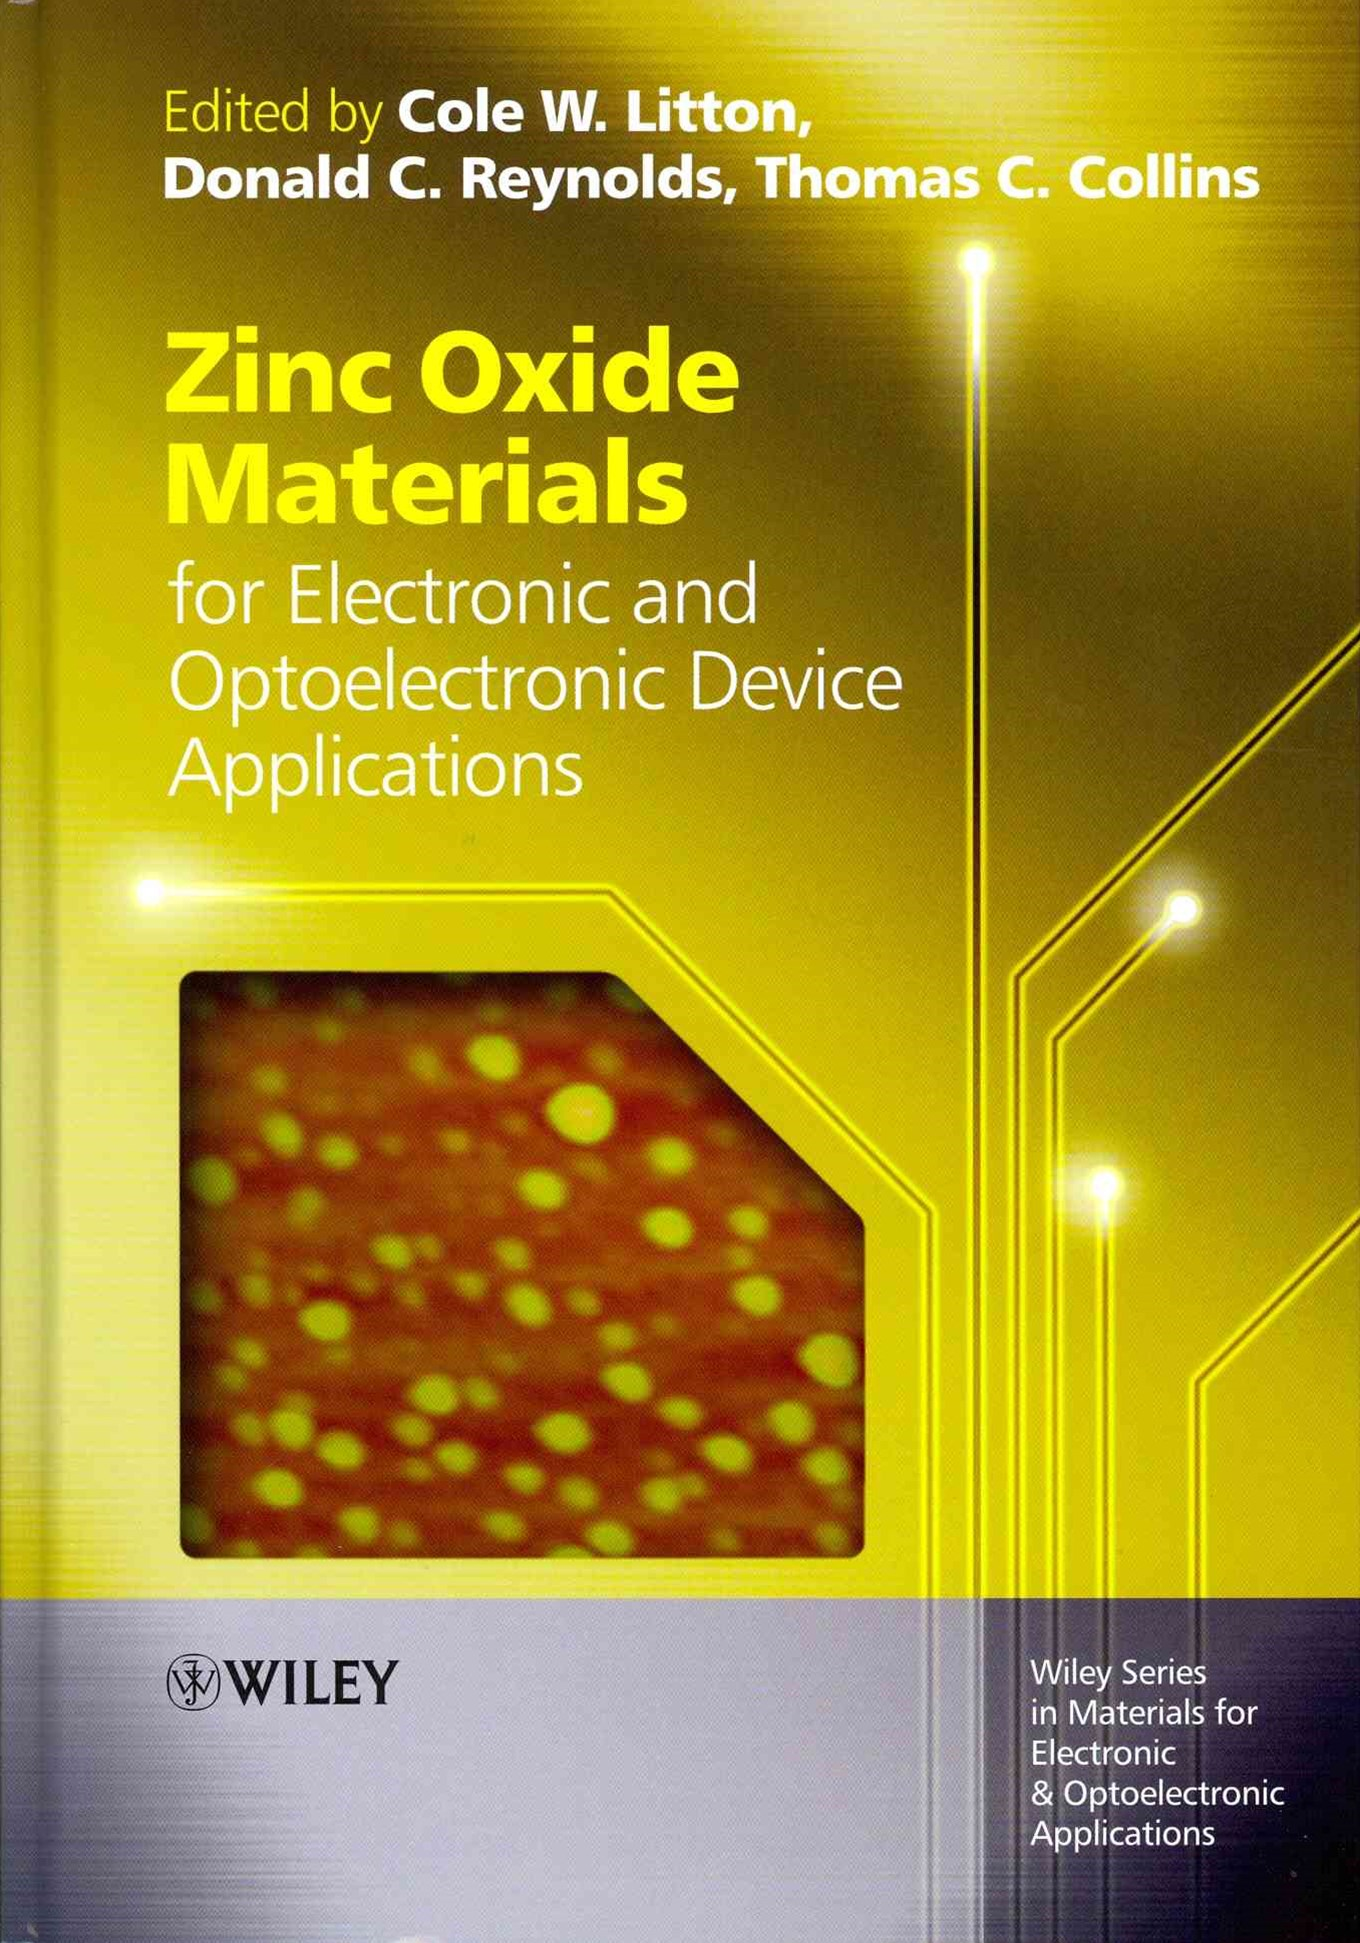 Zinc Oxide Materials for Electronic and           Optoelectronic Device Applications